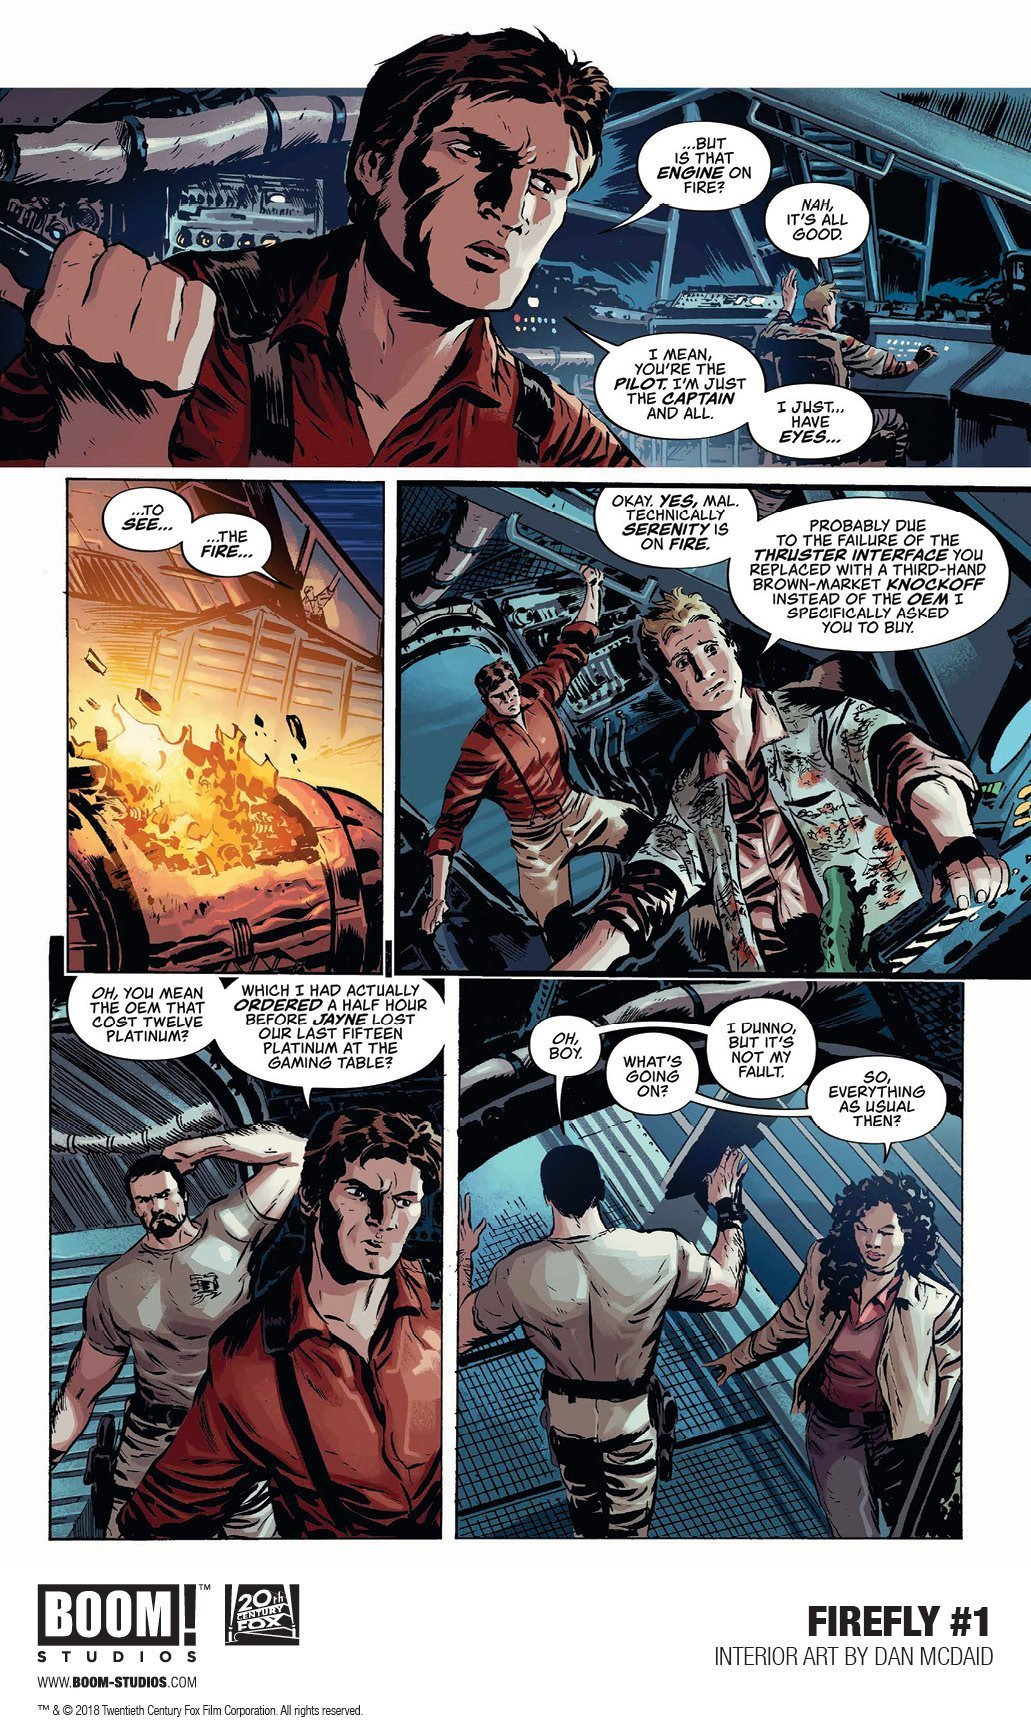 Firefly: A Space Western Comics For Adrenaline Junkies 2